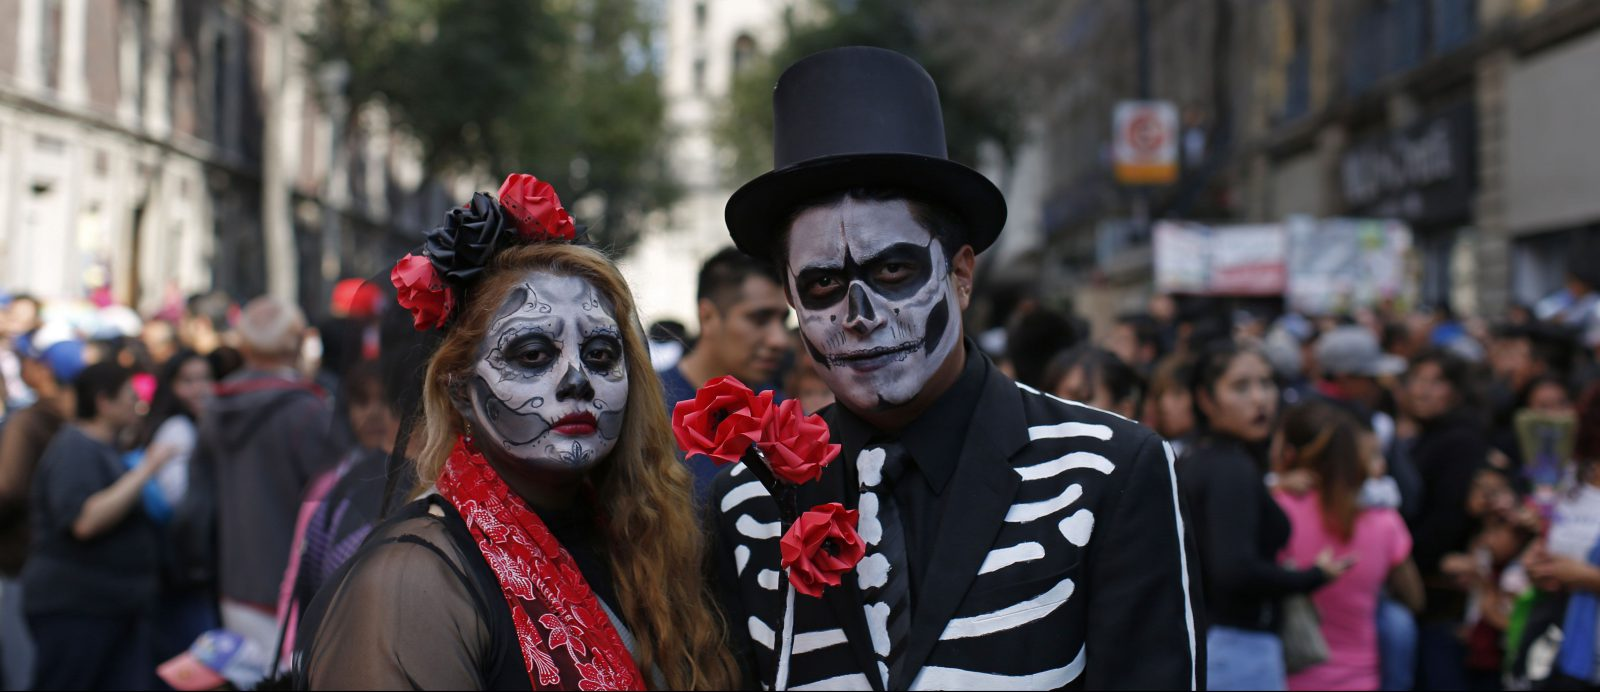 day of the dead parade in mexico city shows how james bond and